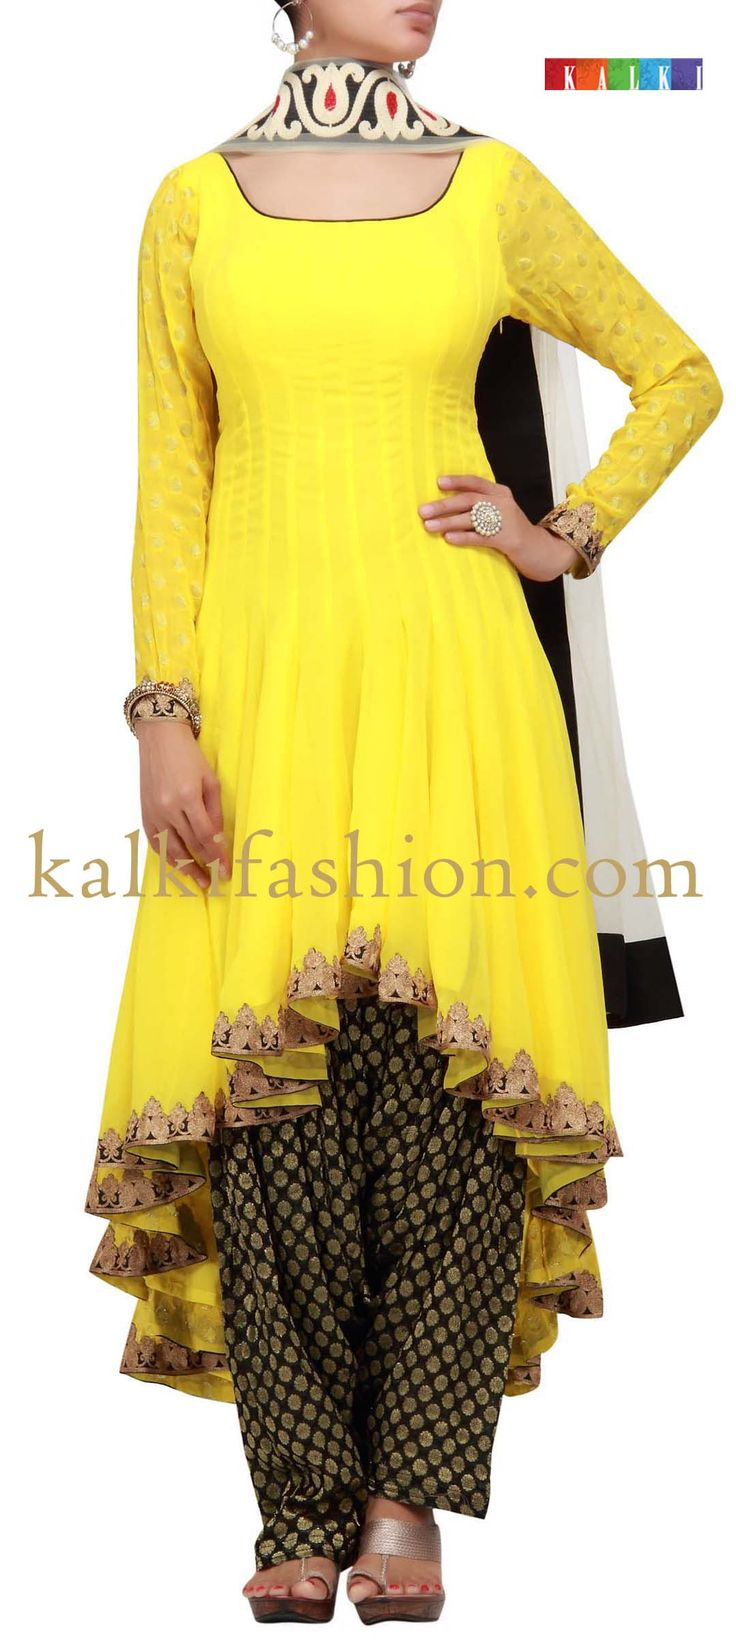 Buy it now http://www.kalkifashion.com/yellow-patiala-suit-with-tail-cut.html Yellow patiala suit with tail cut